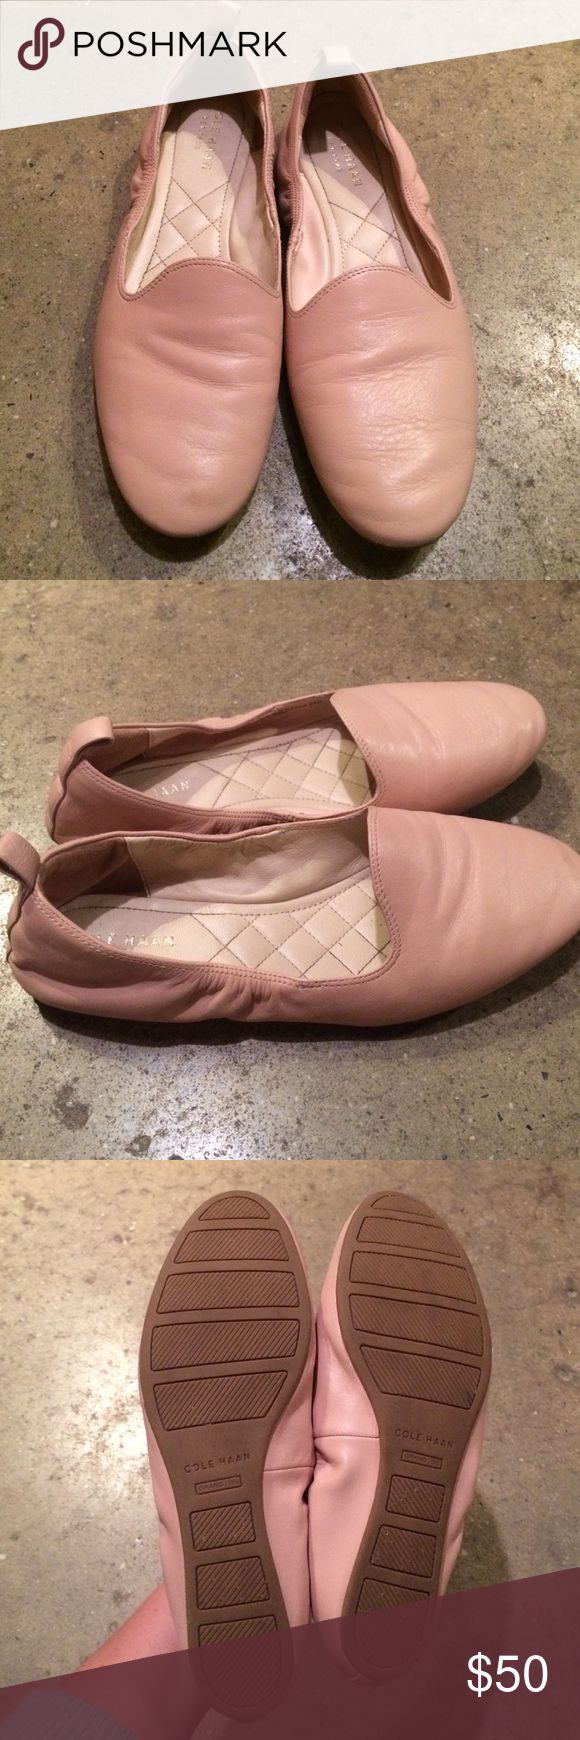 Cole Haan 100% genuine leather loafers Gently used, no scuffs. Ballet pink leather loafers. Super comfy and flattering but were a bit too small for me. Cole Haan Shoes Flats & Loafers